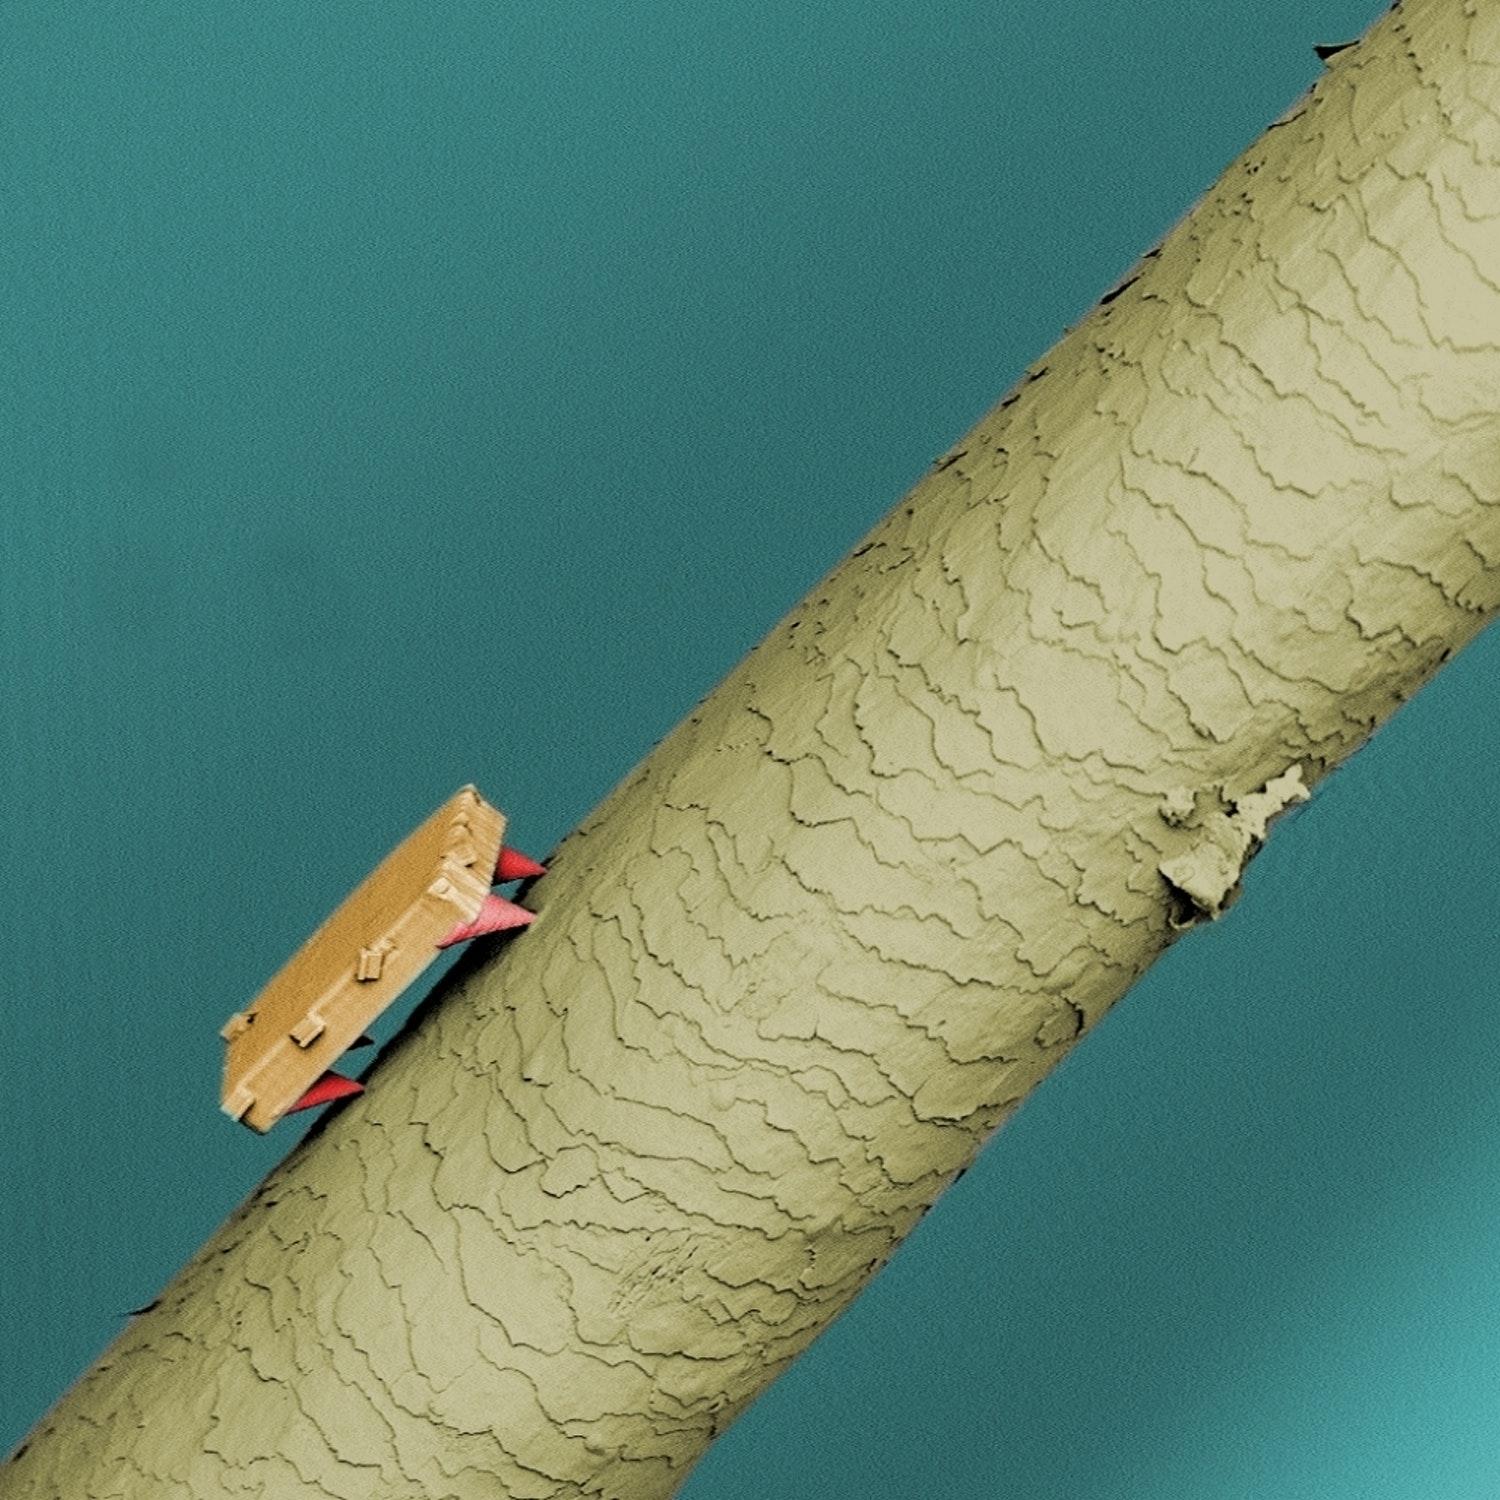 A 60-micron robot sits on a strand of human hair, which on average is 75 microns across.